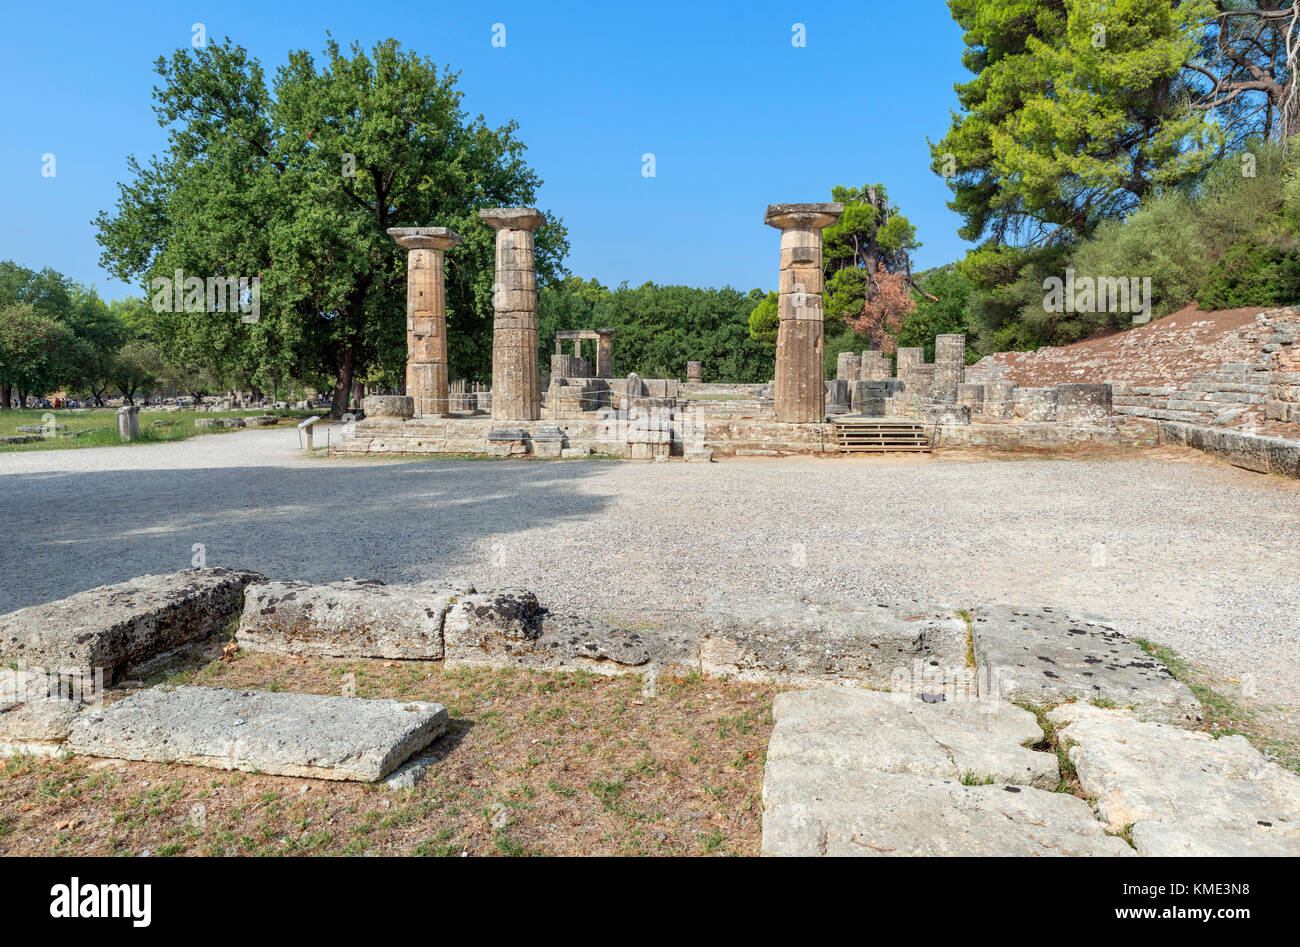 Hera Greece Stock Photos Amp Hera Greece Stock Images Alamy